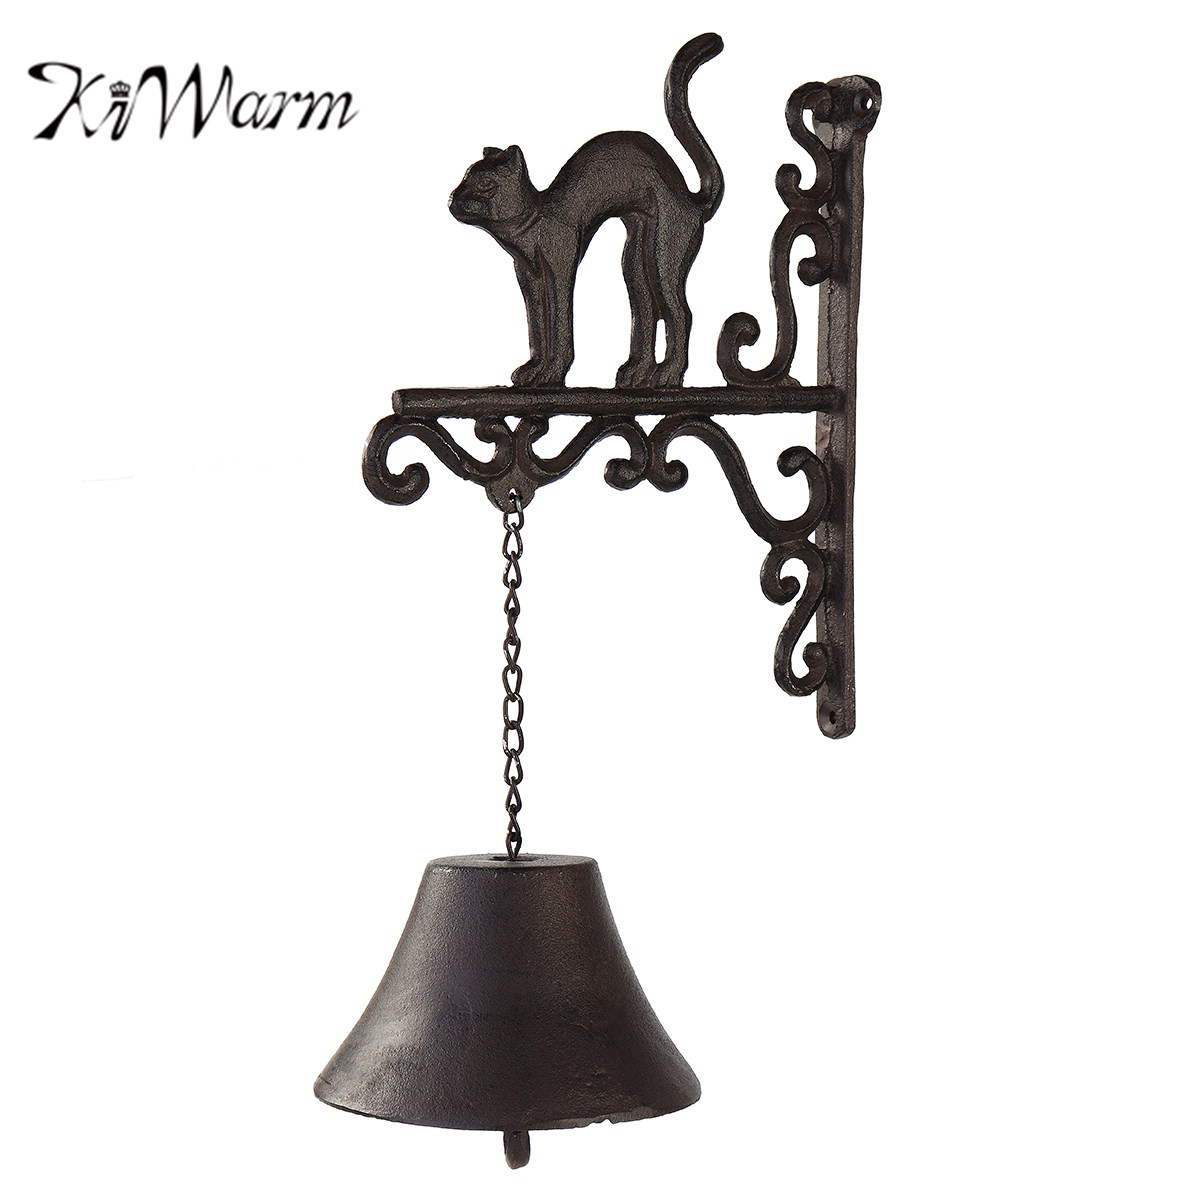 KiWarm Vintage Cast Iron Door Bell Metal Wall Mounted Bend Back Cat Design for Home Garden Hanging Ornament ...